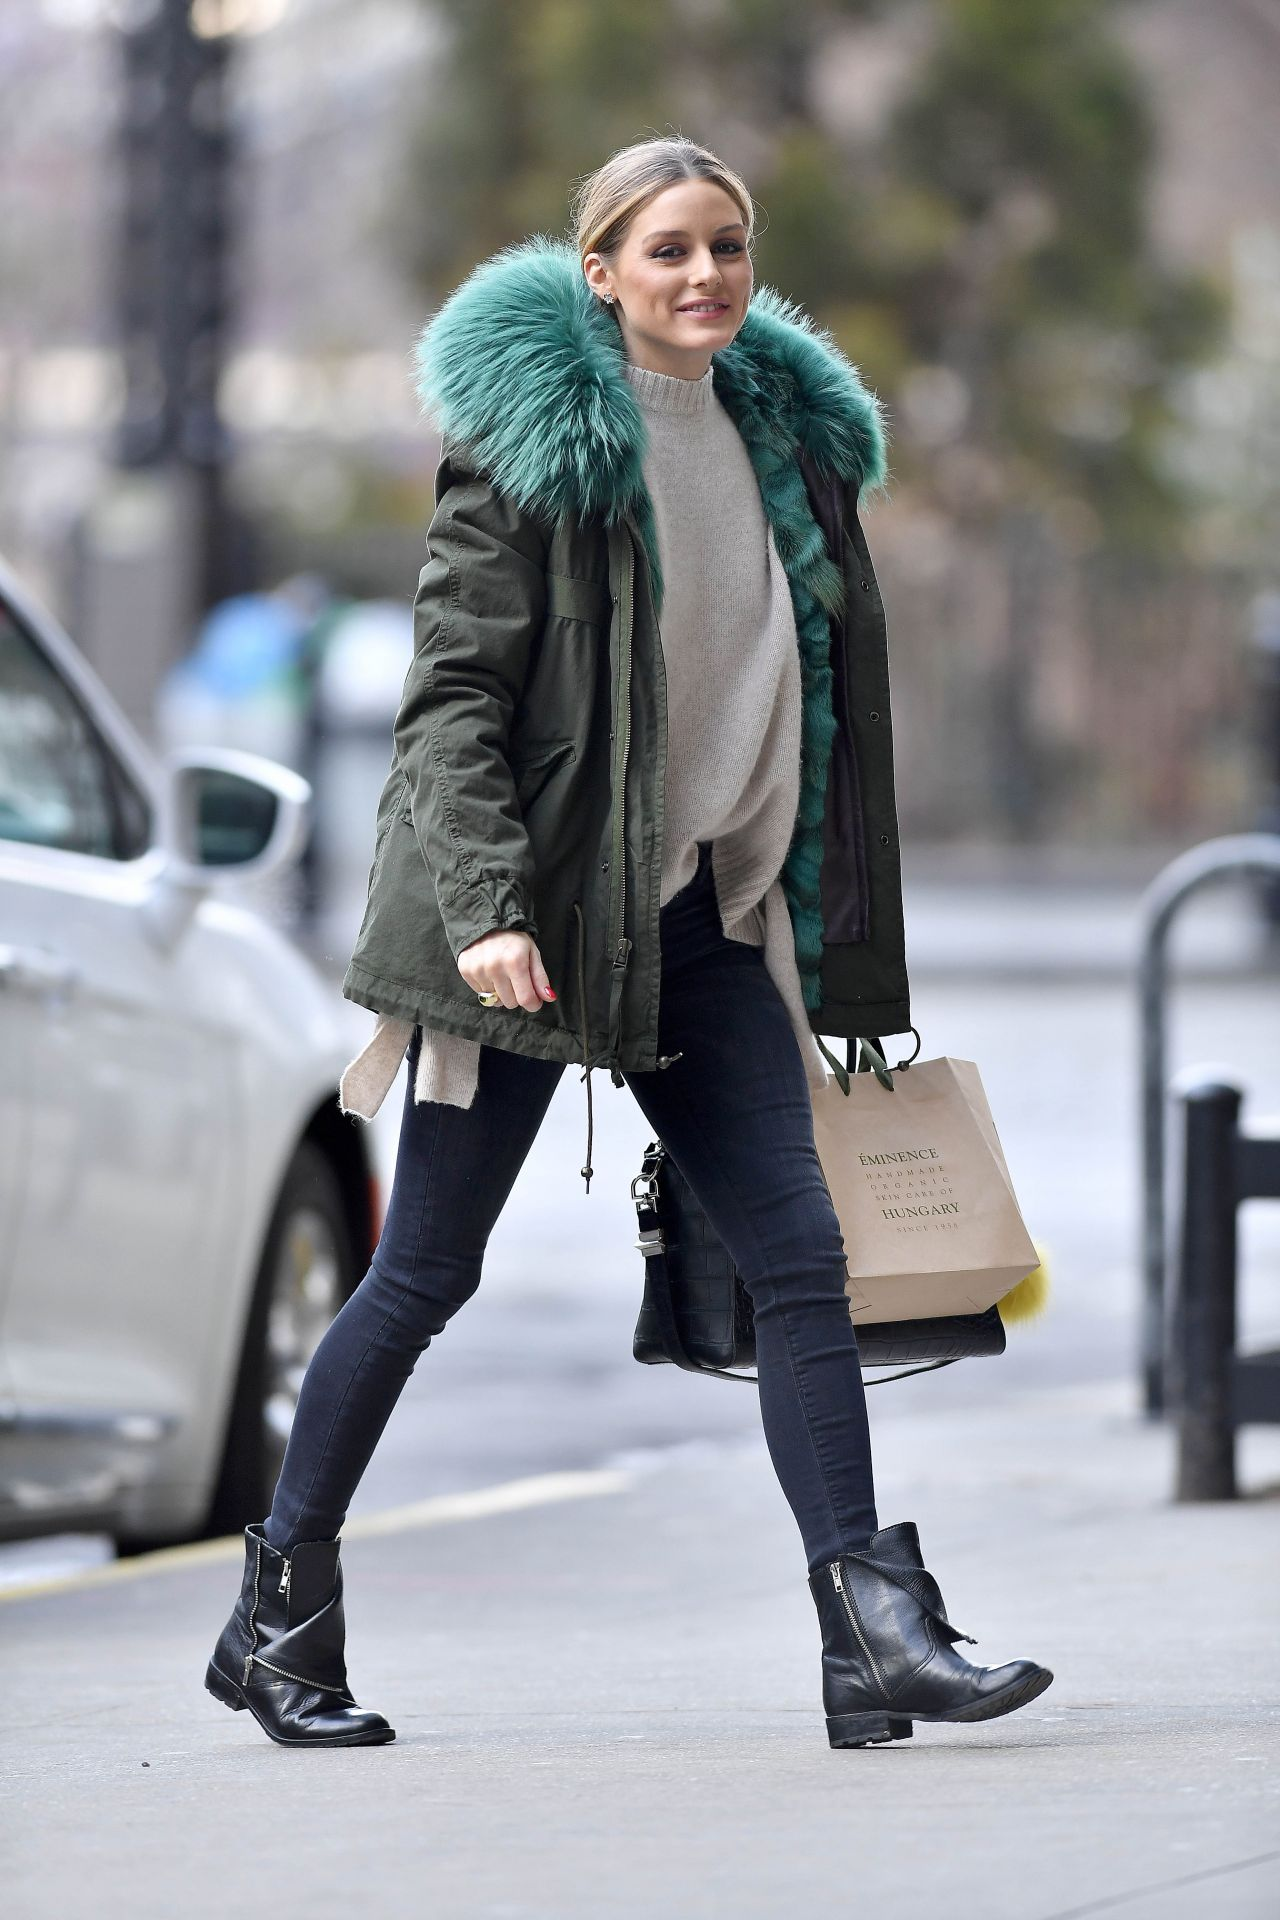 Olivia Palermo Wearing A Green Jacket And Black Boots